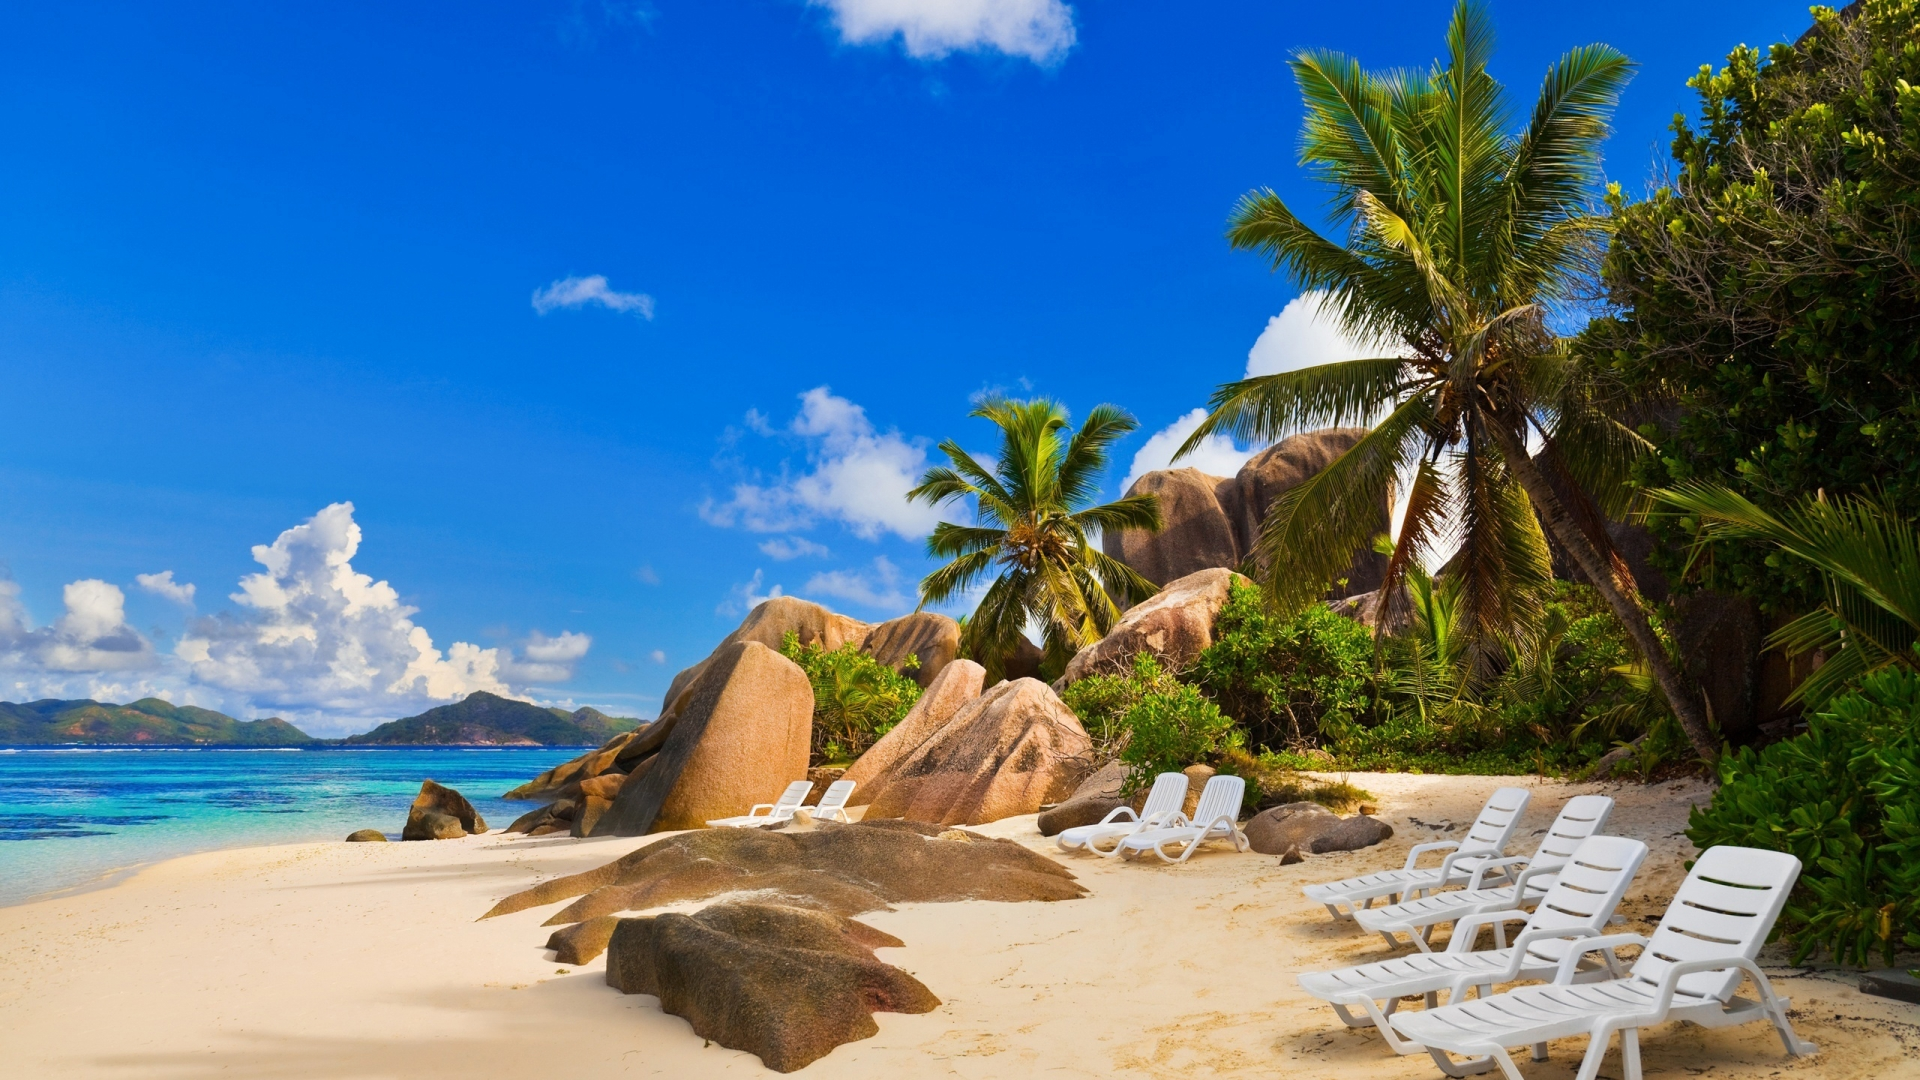 Exotic Sea Beach Wallpaper HD Sea Beach HD Widescreen Wallpapers 1920x1080